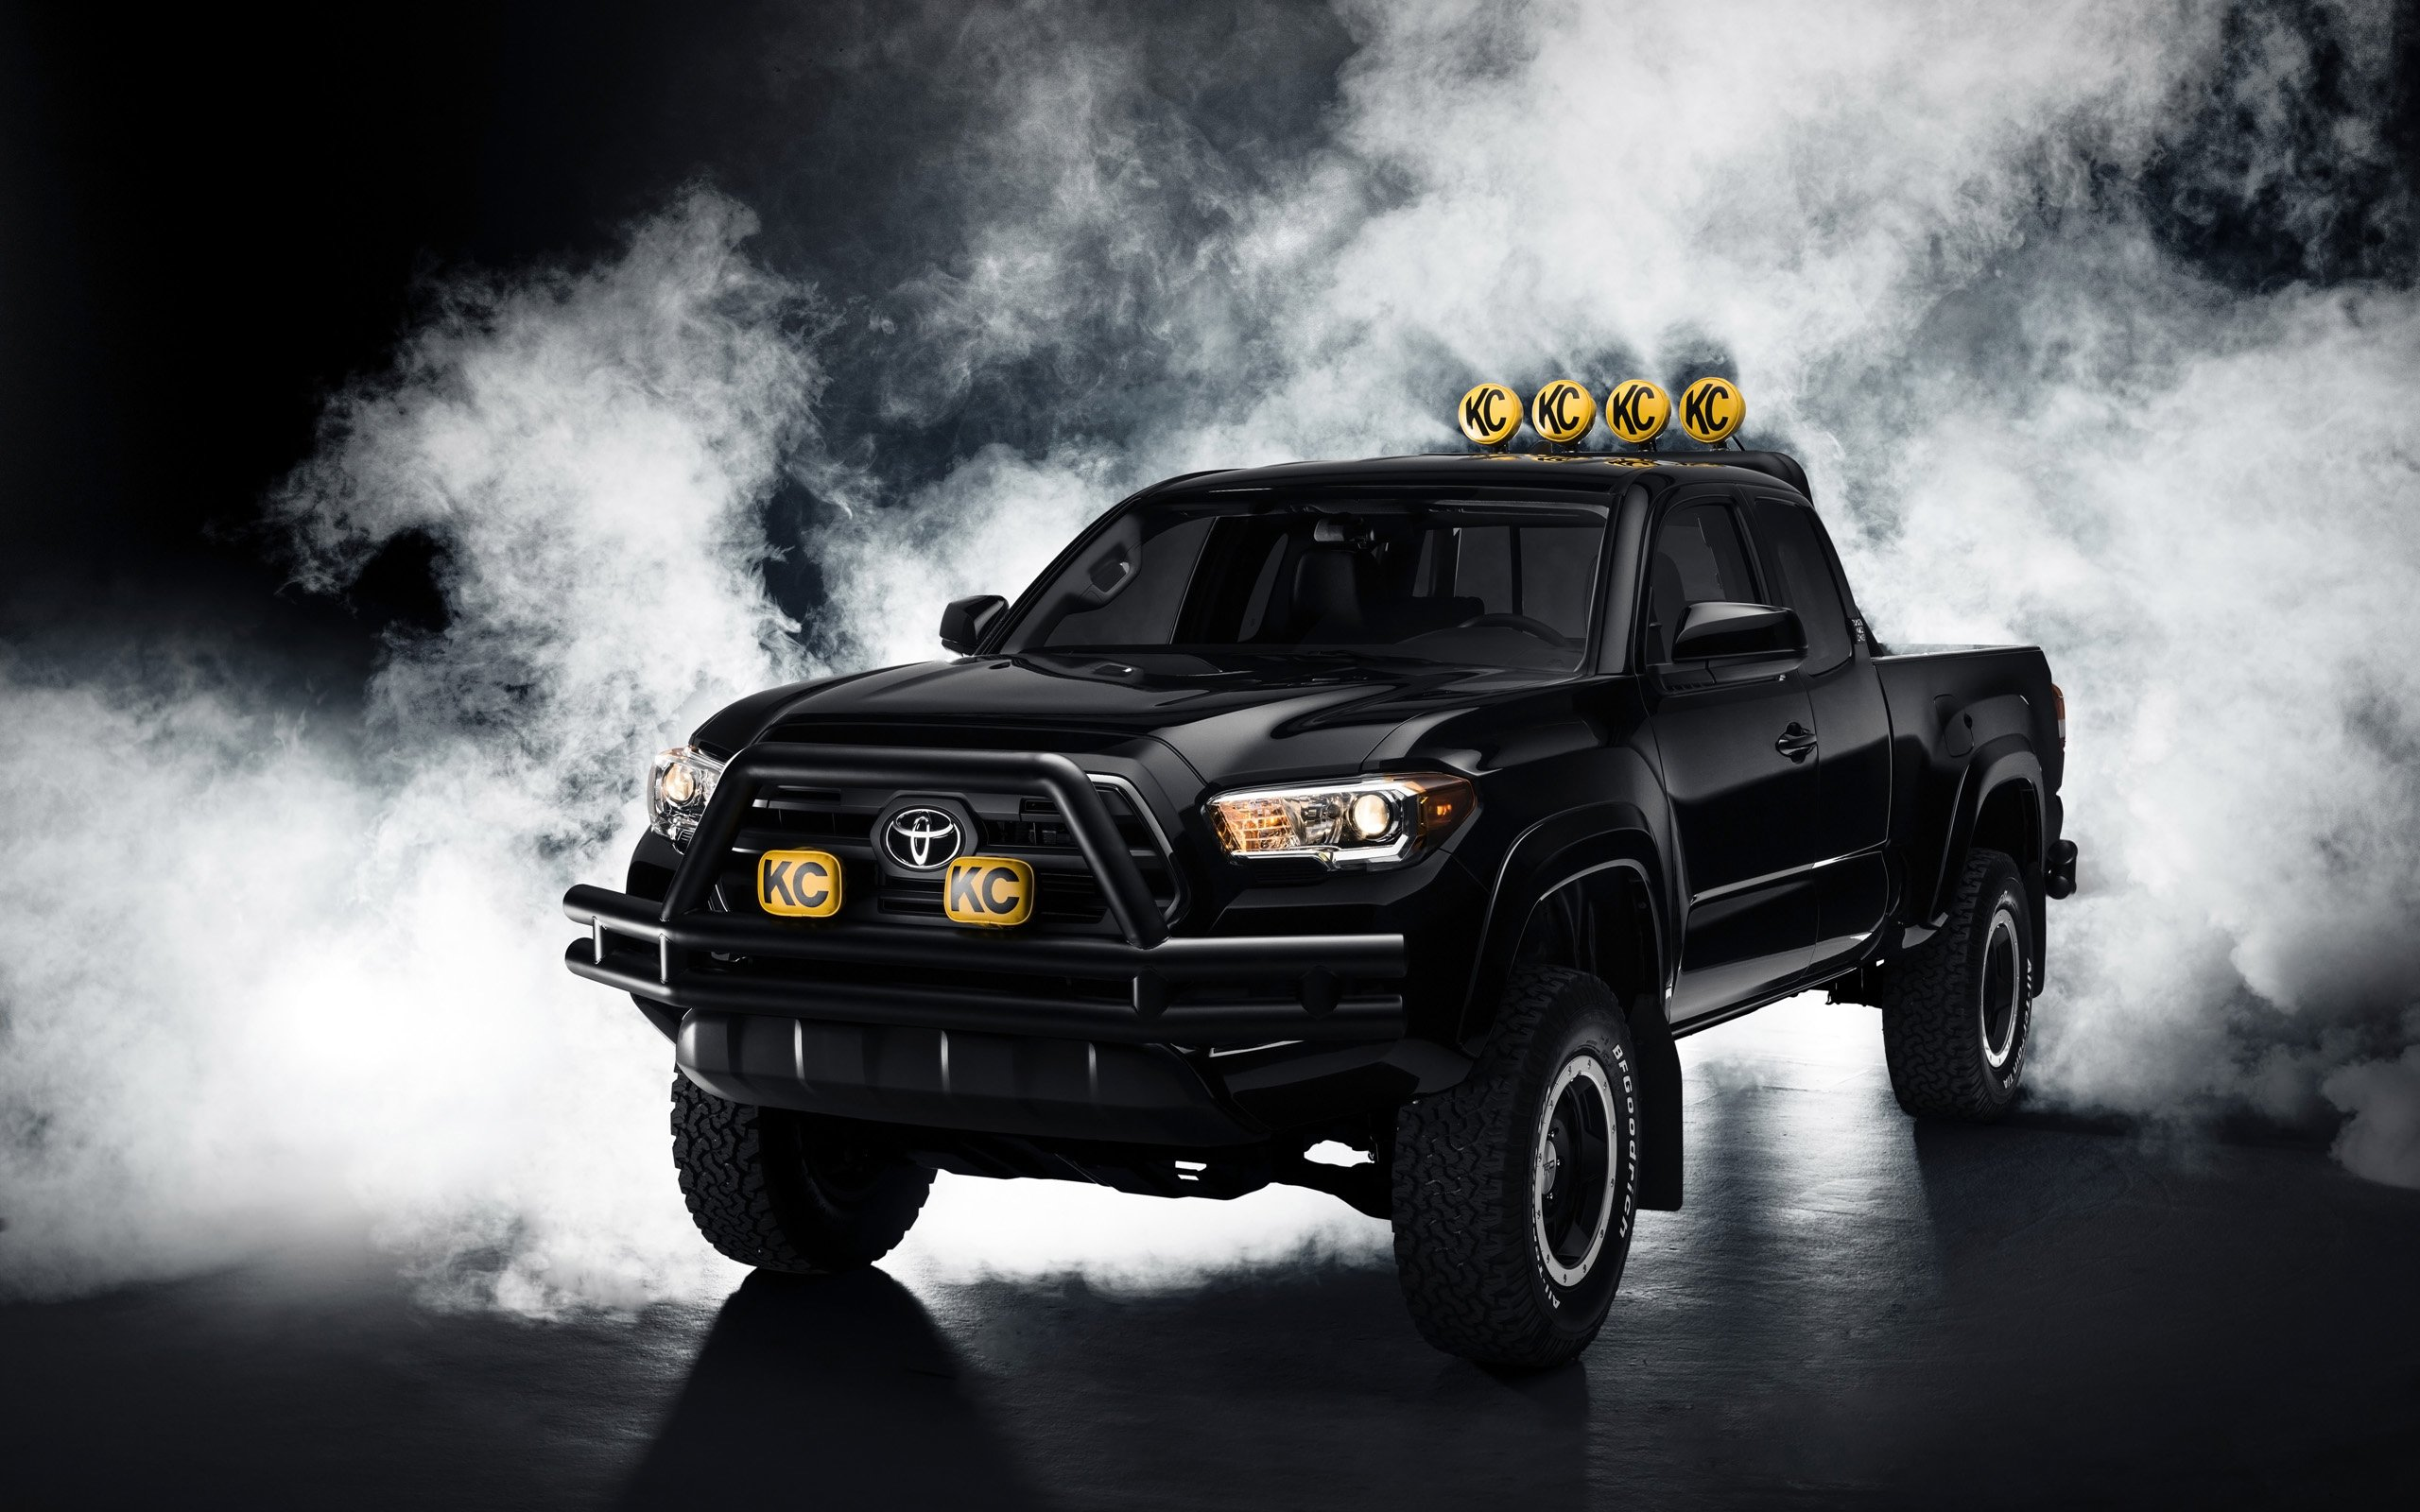 2016 Toyota Tacoma Back to the Future Wallpaper HD Car Wallpapers 2560x1600